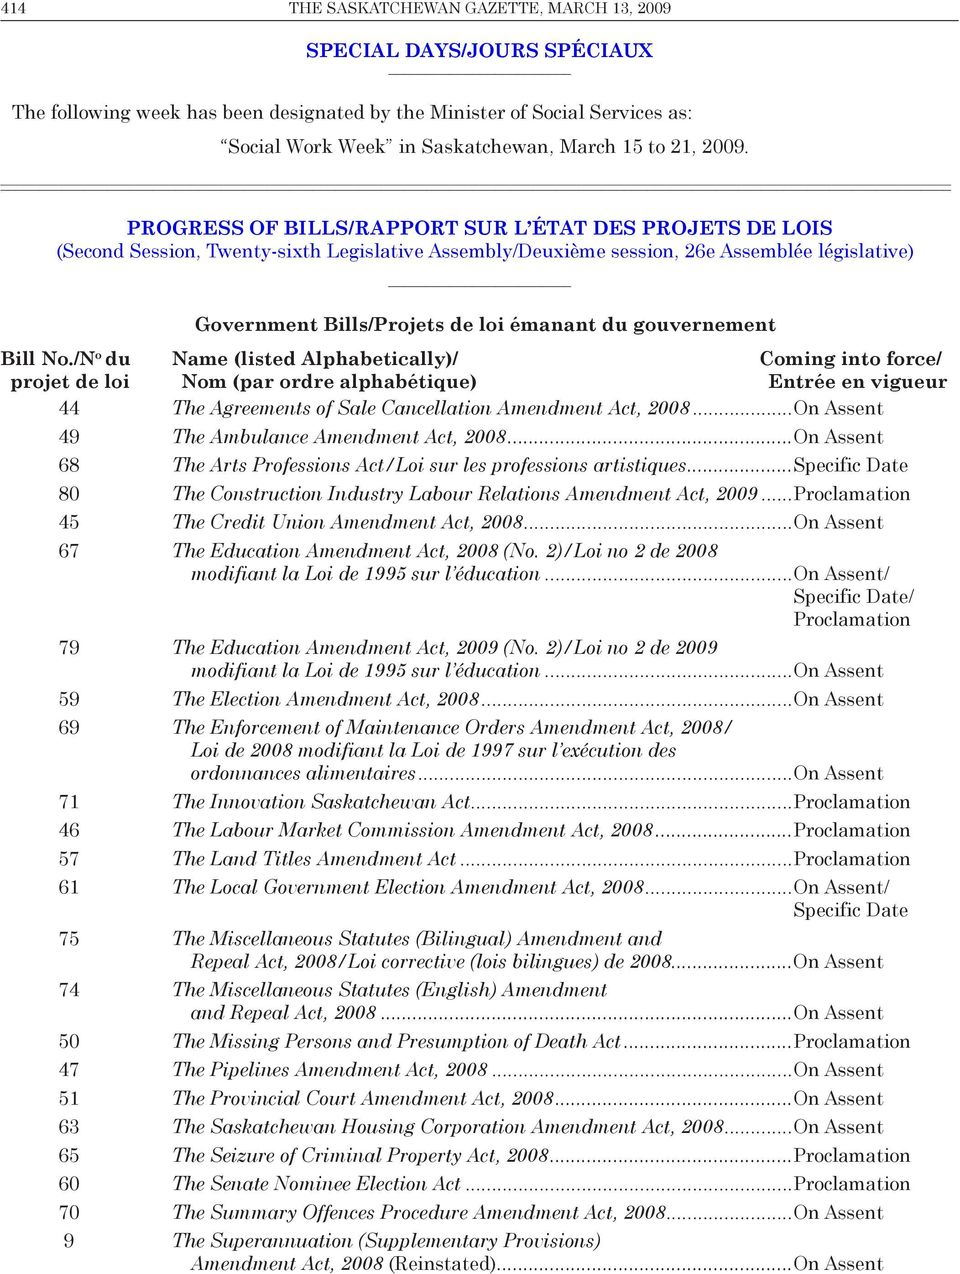 progress of bills/rapport sur l état des projets de lois (Second Session, Twenty-sixth Legislative Assembly/Deuxième session, 26e Assemblée législative) Government Bills/Projets de loi émanant du